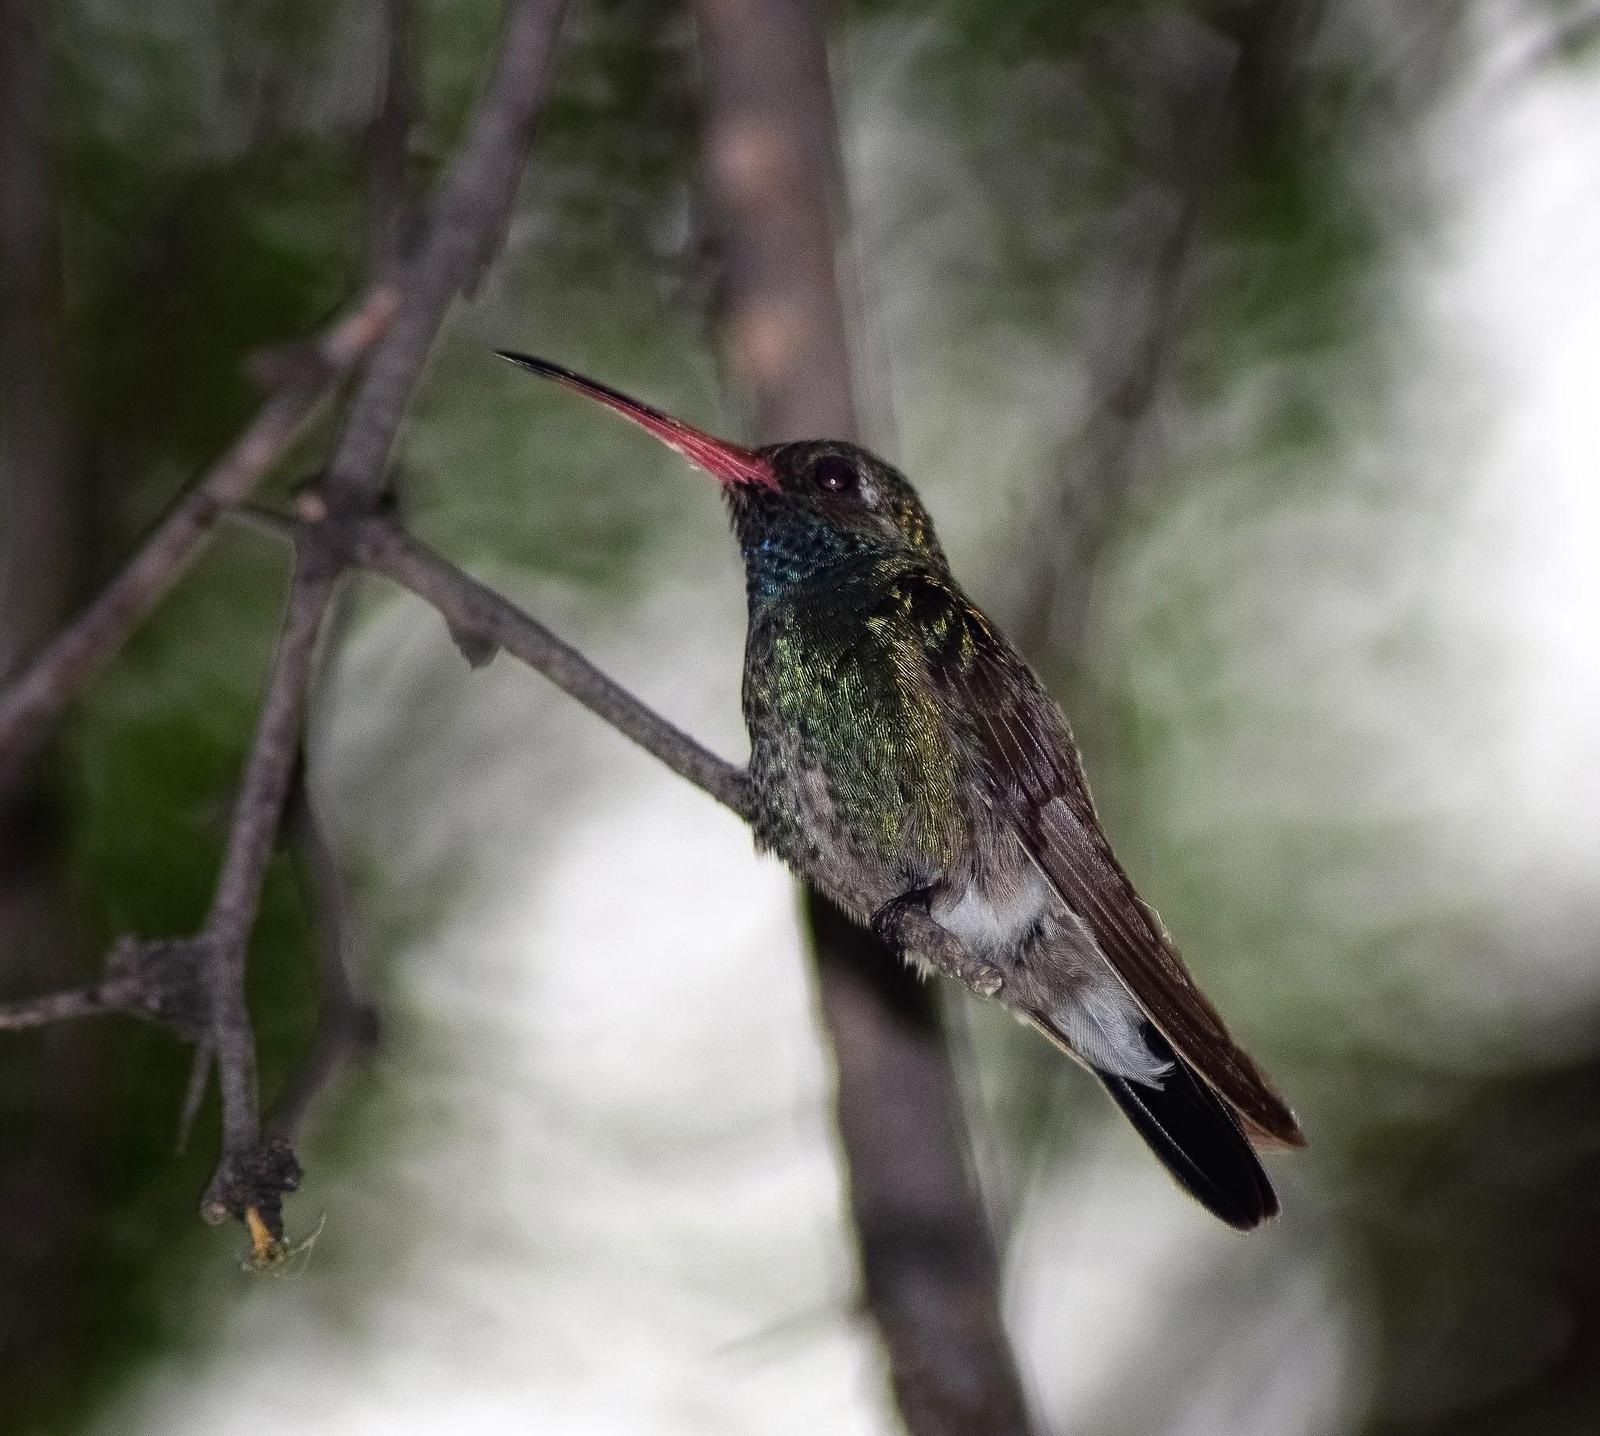 Broad-billed Hummingbird Photo by Laura A. Martínez Cantú